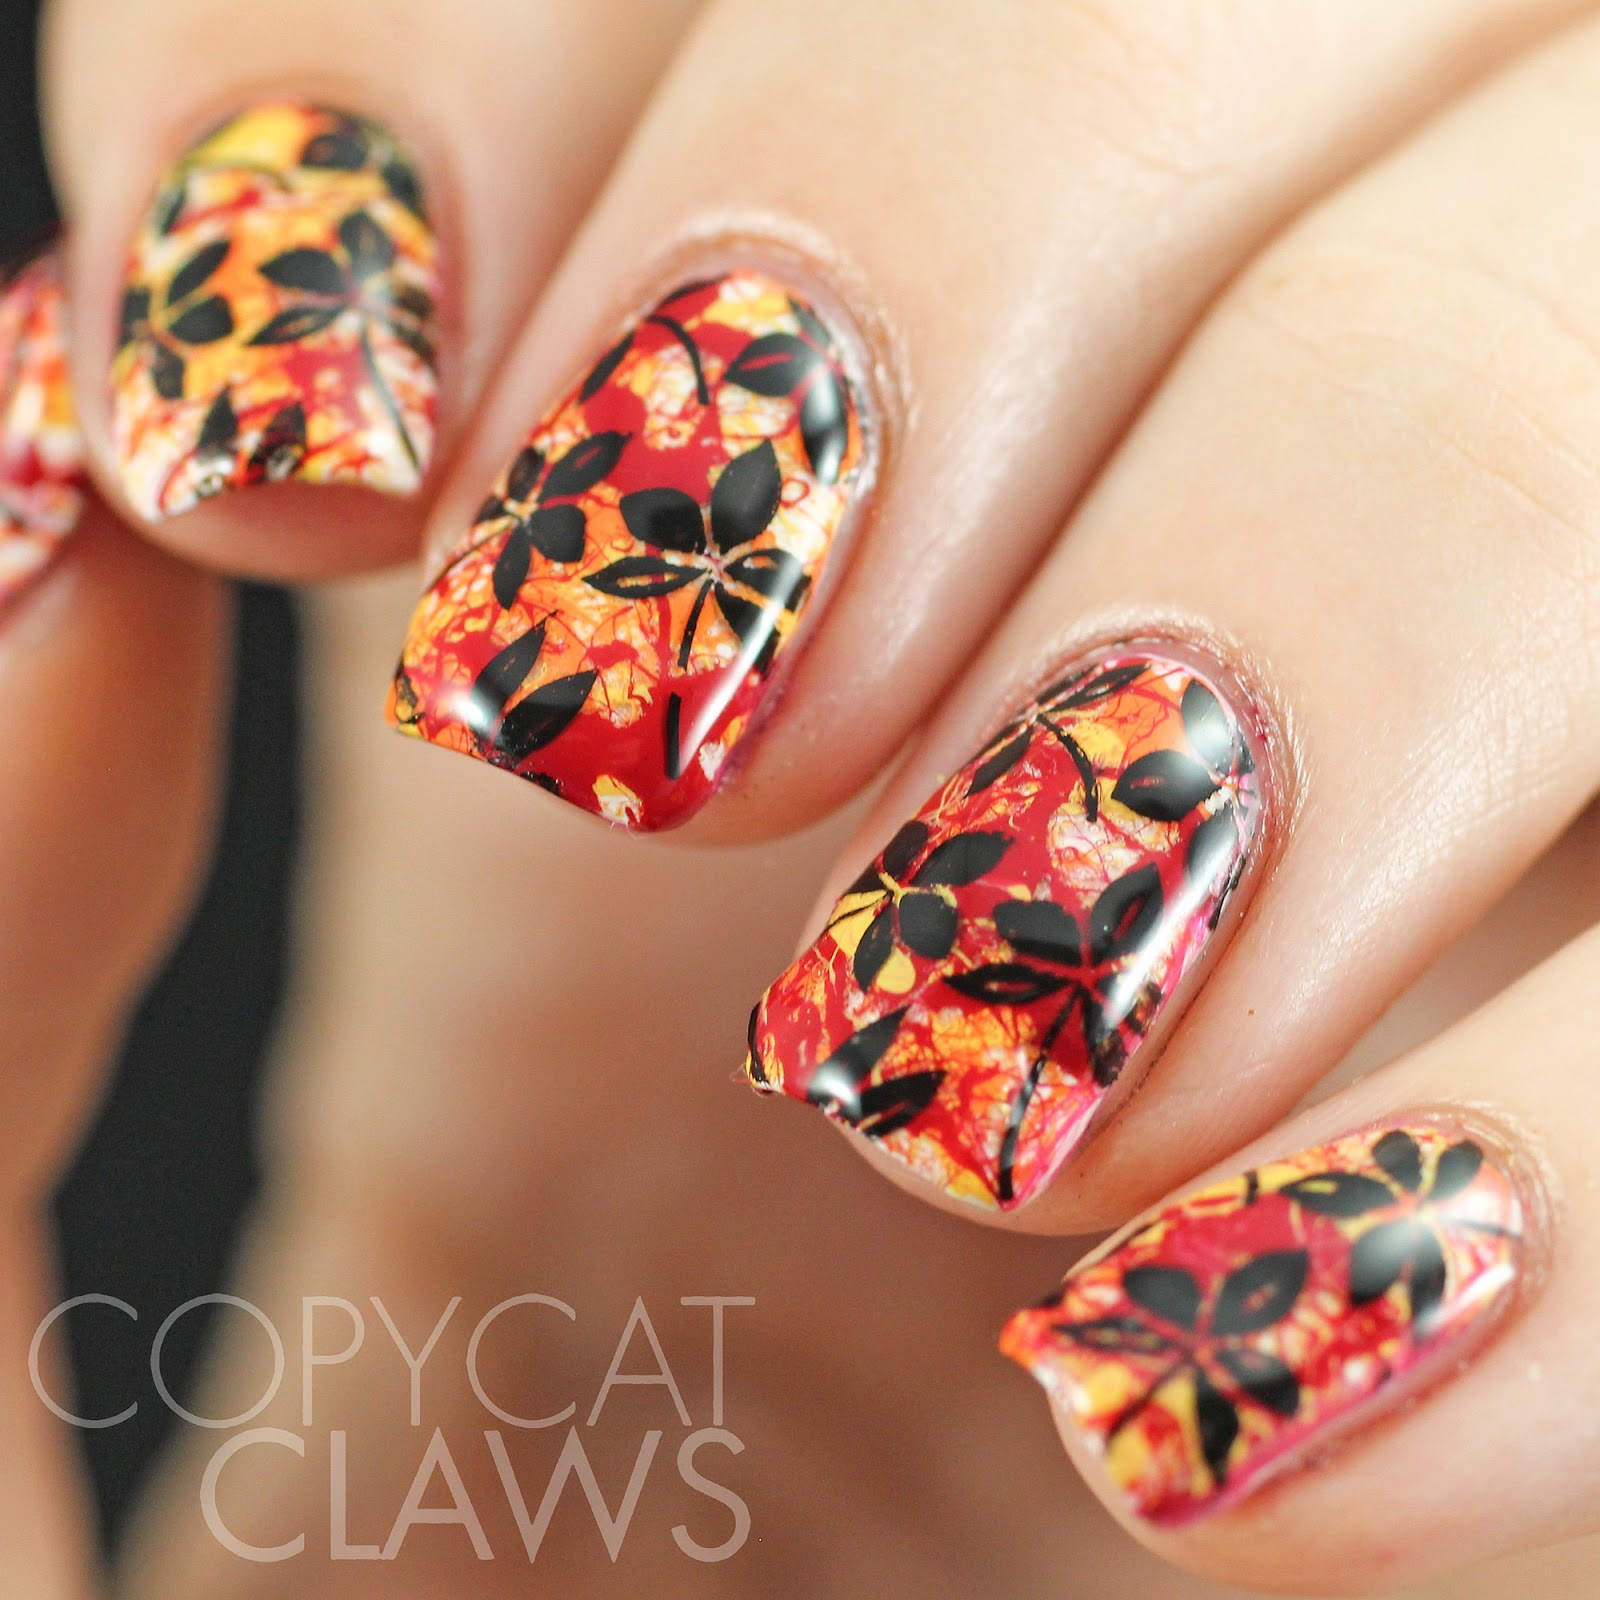 Copycat Claws: October 2015